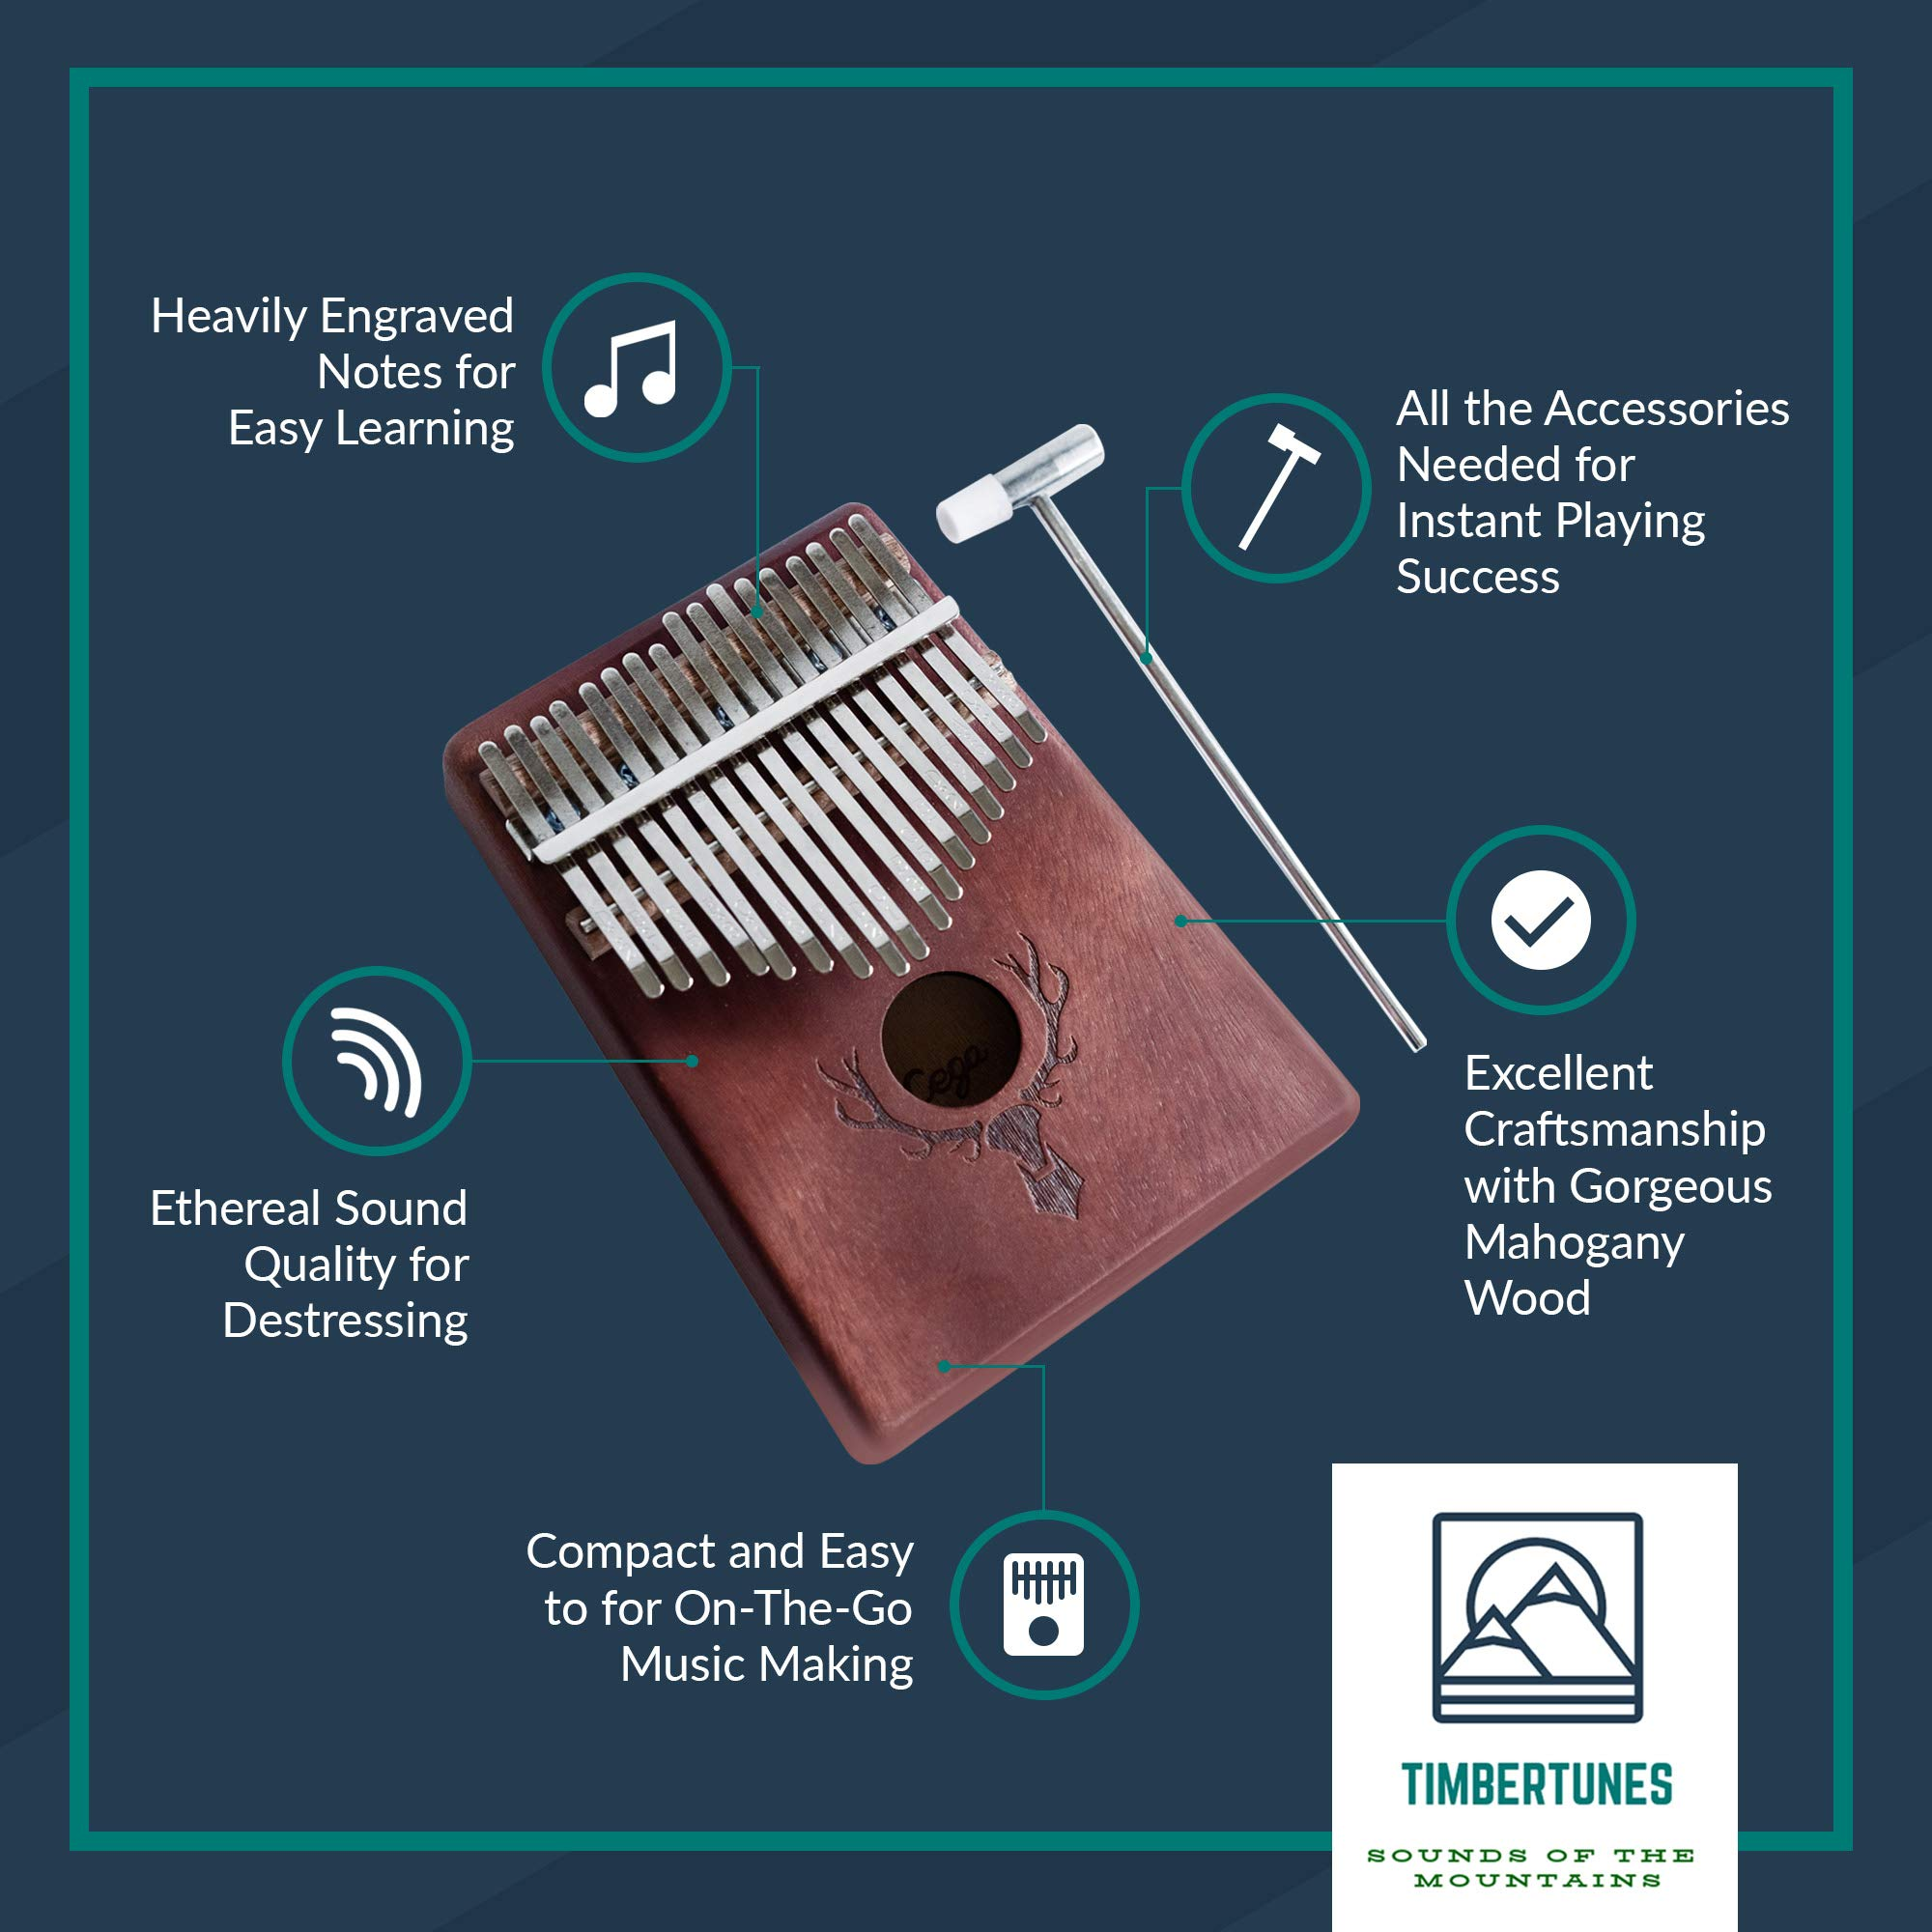 TimberTunes 17 Key Kalimba Thumb Finger Piano Therapy Musical Instrument for Adults Children, Solid Mahogany Wood, Engraved Elk Antler,Tuning Hammer and Music Book, Engraved Keys, Velvet Case, Unique by Timbertunes (Image #4)